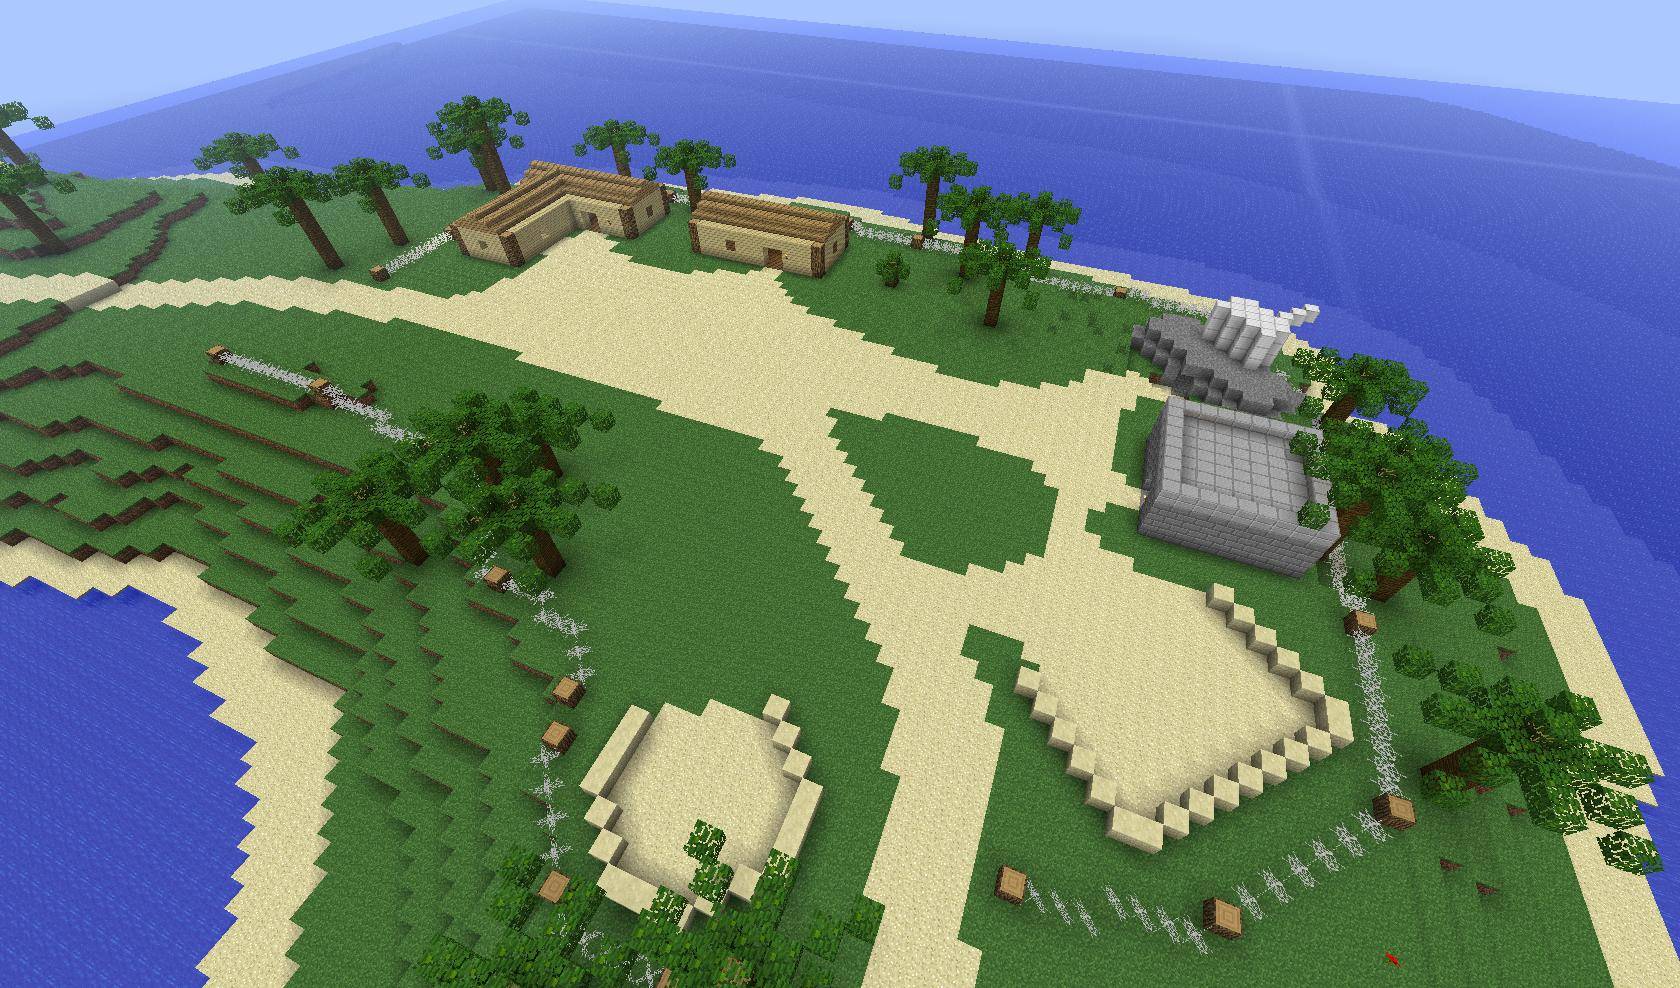 Mc world war 2 heroes warning coming soon pc servers servers wake island base minecraft map download gumiabroncs Gallery